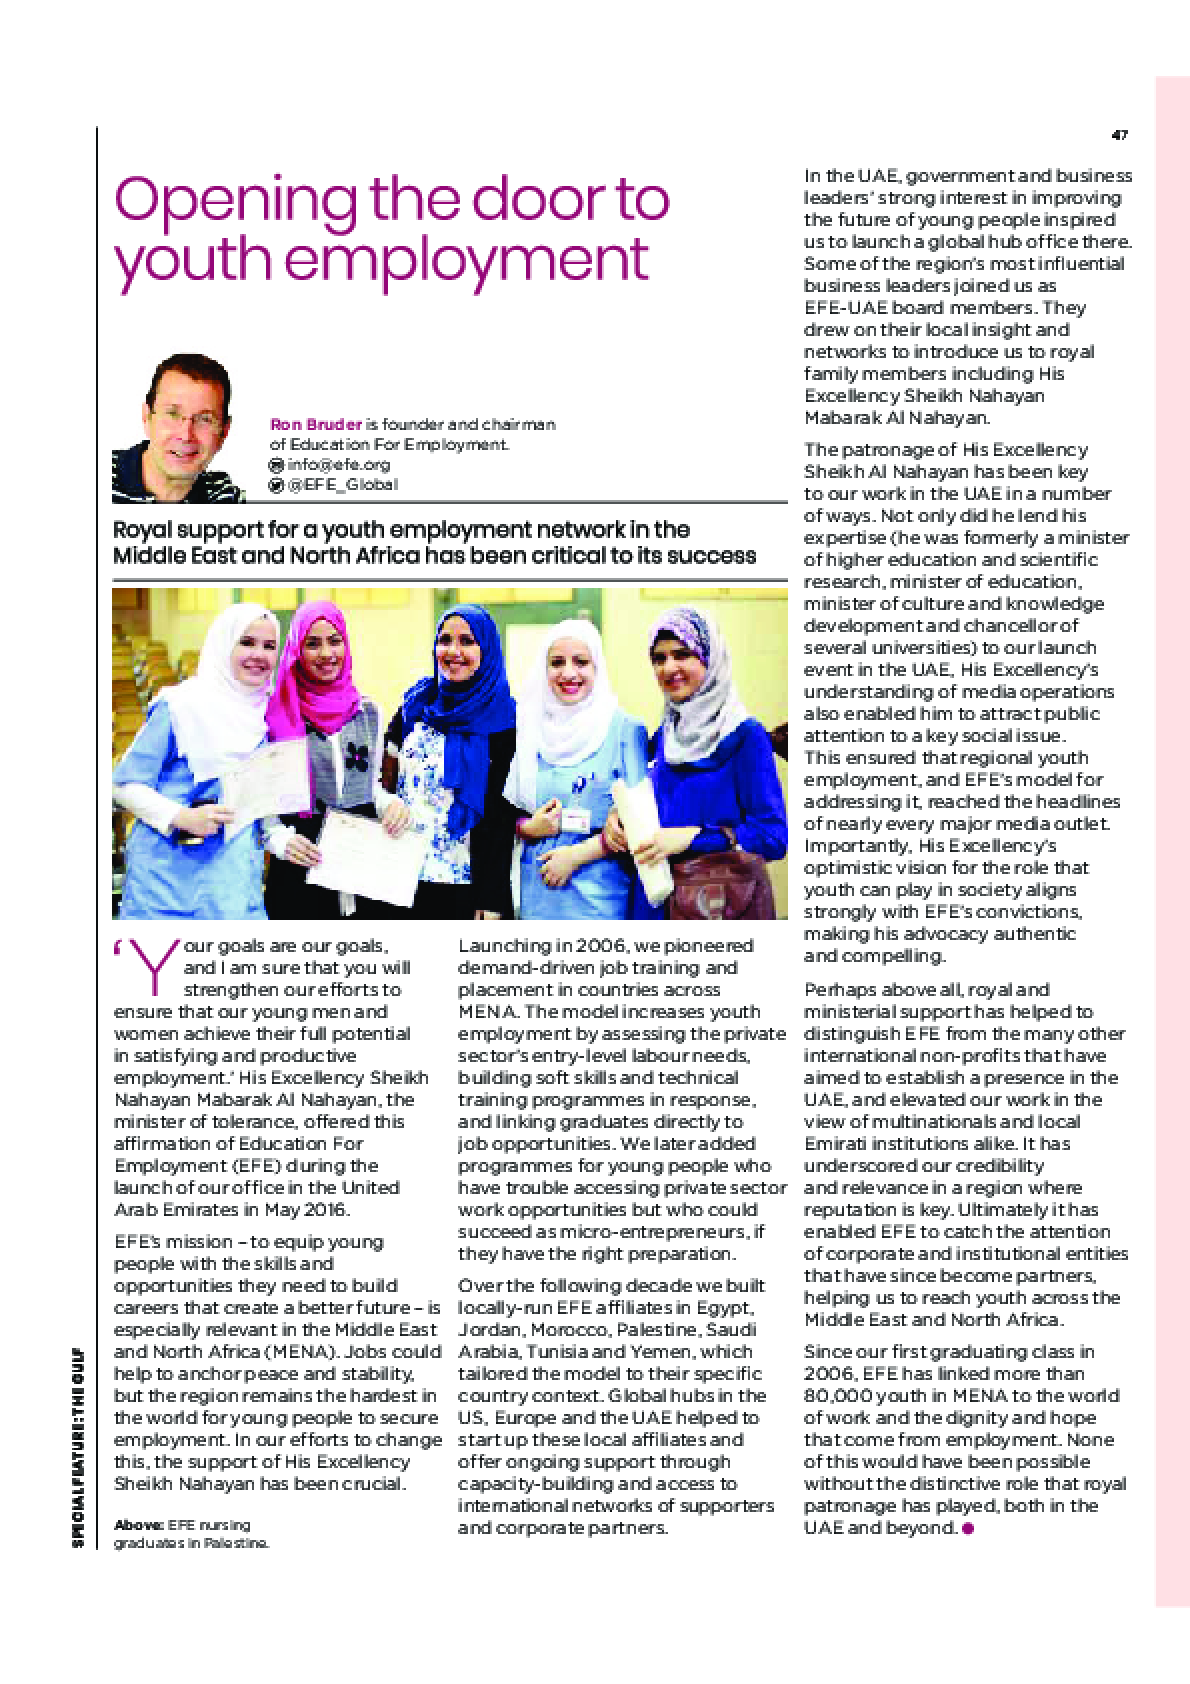 Opening the door to youth employment